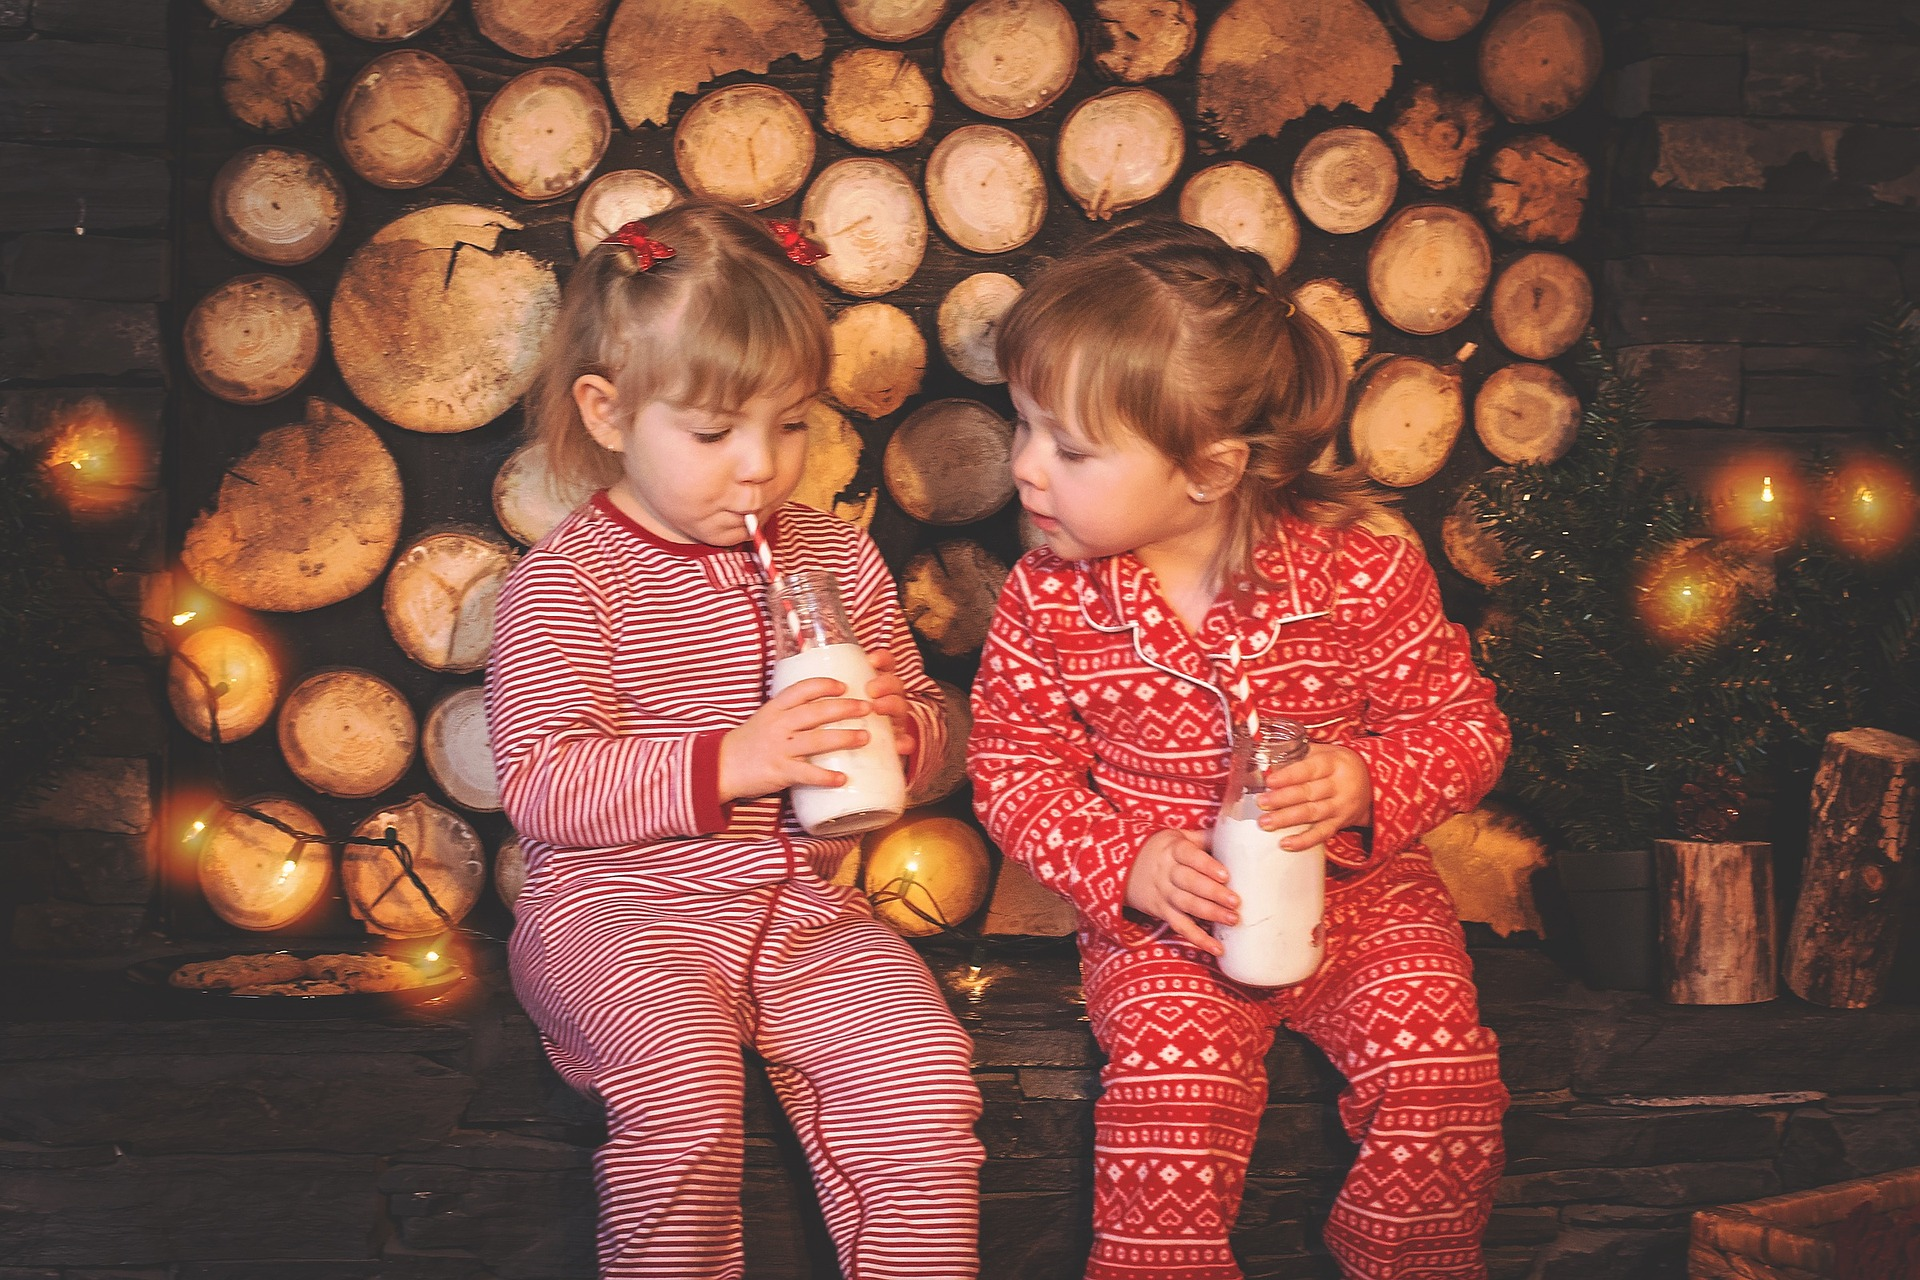 Two little girls dressed in Christmas pajamas drinking milk.